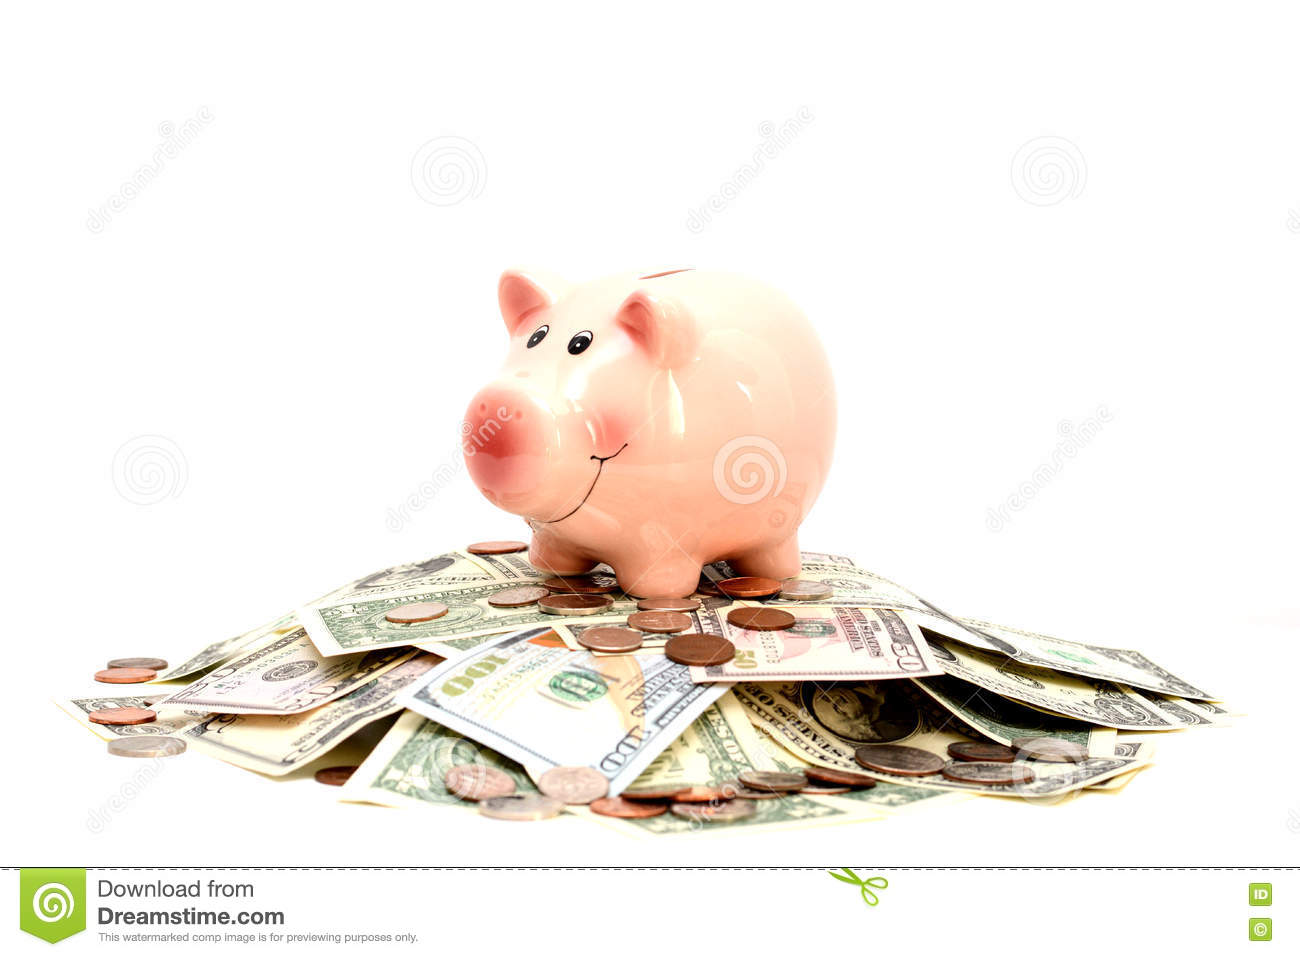 Pink piggy bank standing on a pile of coins and bills, suggesting money savings